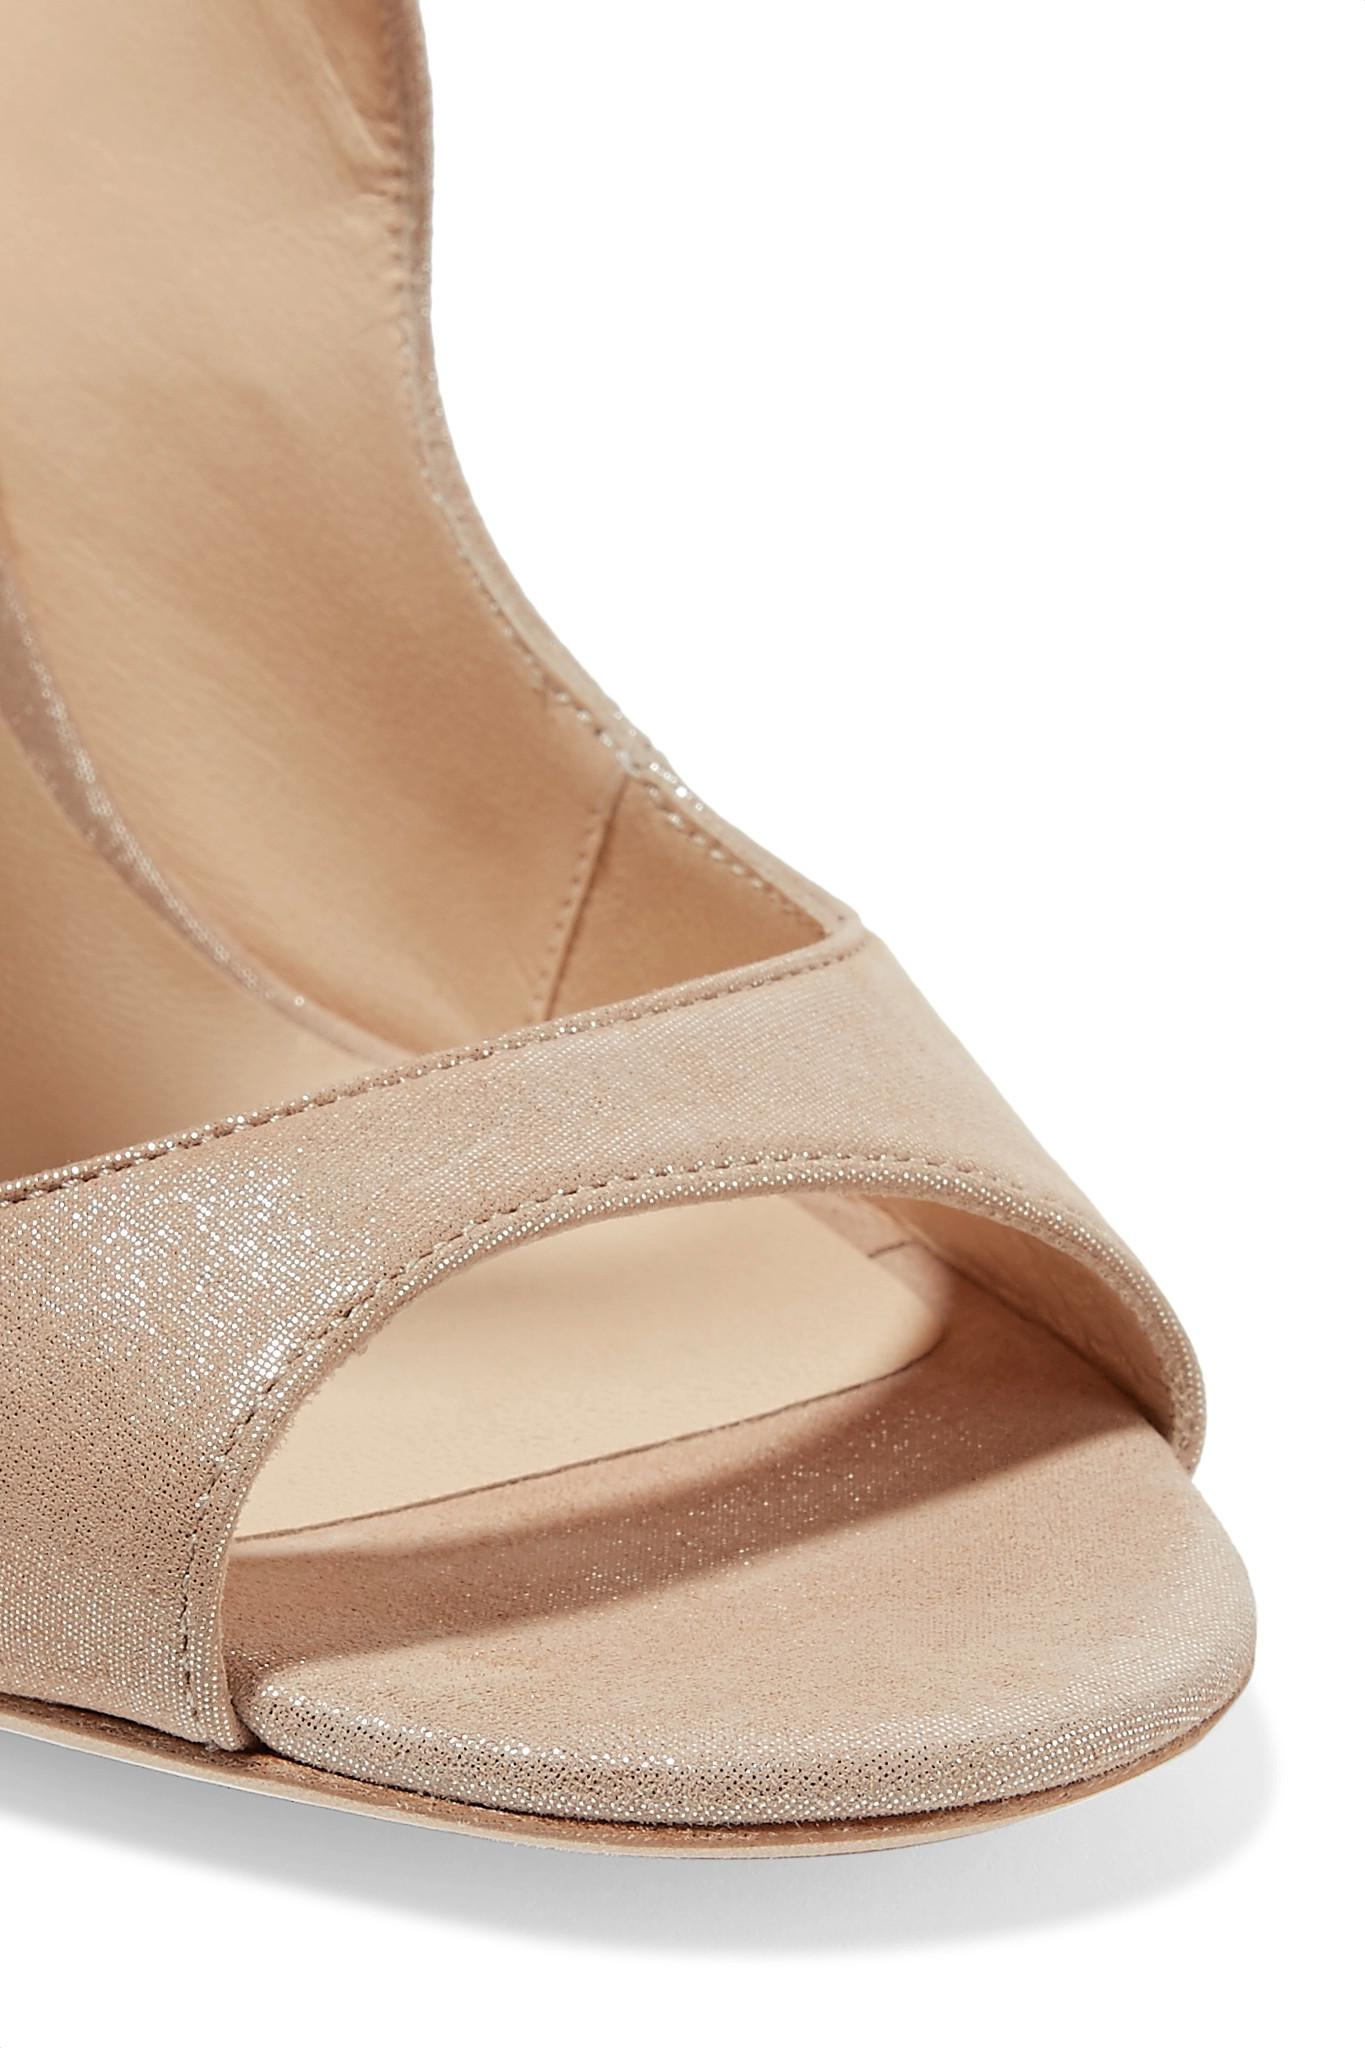 38fc7625513 Lyst - Jimmy Choo Blythe Scalloped Suede Sandals in Natural